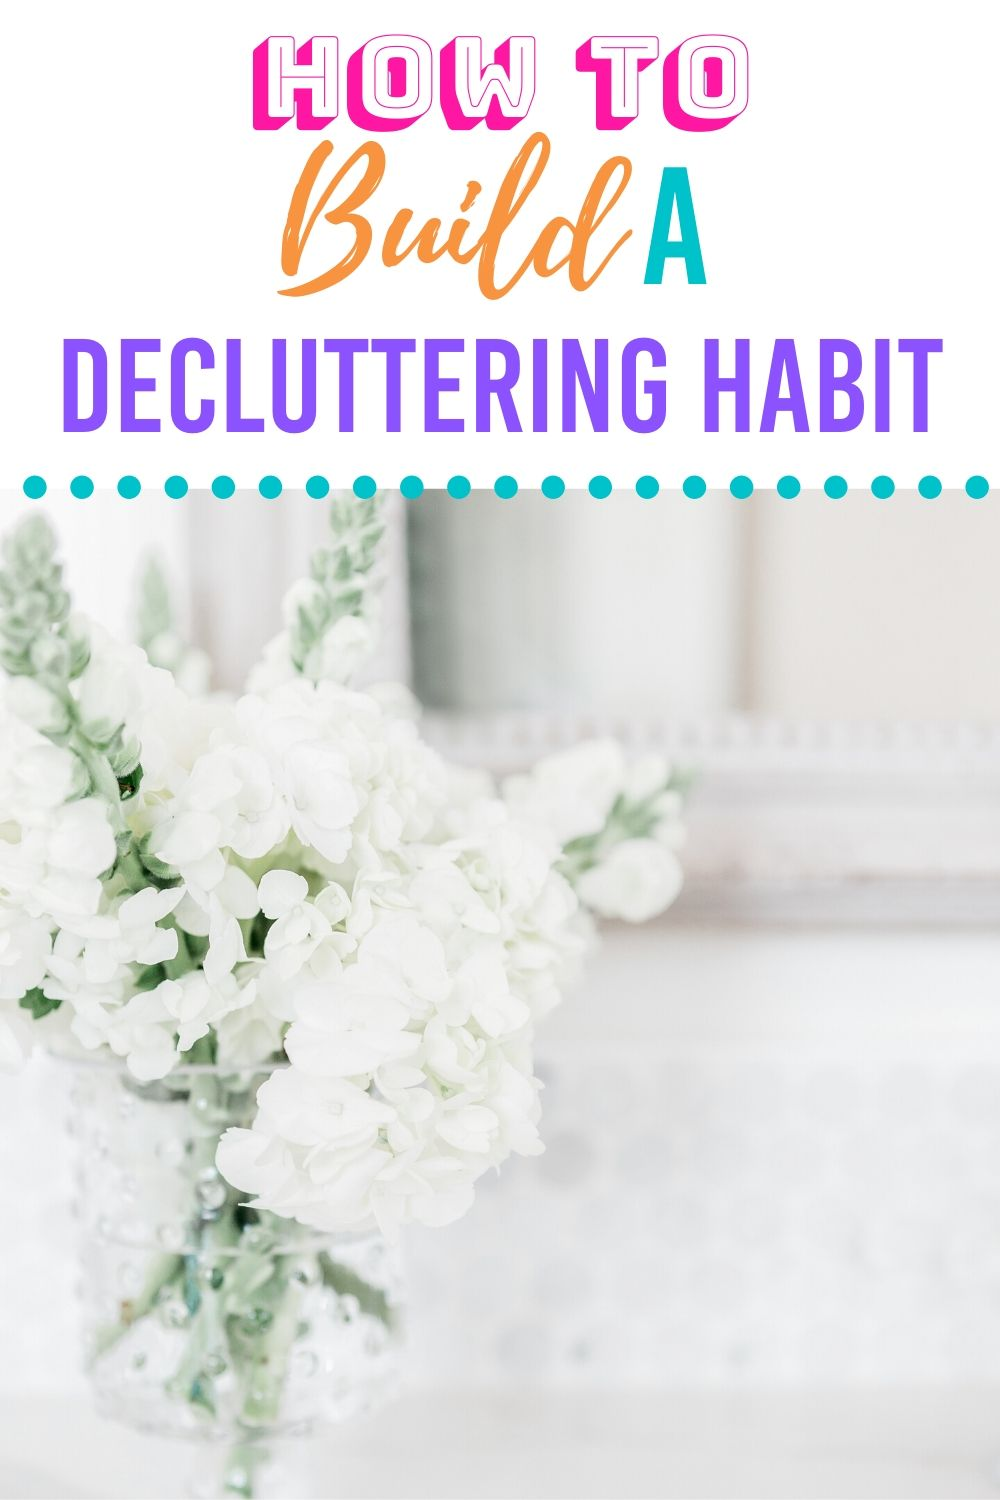 Setting a declutteringhabit will help you with the clutter in your home. Get some useful decluttering tips to help you create this habit in no time. When you declutter and organize your home will have more room and stay cleaner. #declutteringhabit #declutteringhome #howtodeclutter #declutter #organize #cleaningtips #organizedhome #declutterandorganize via @homebyjenn